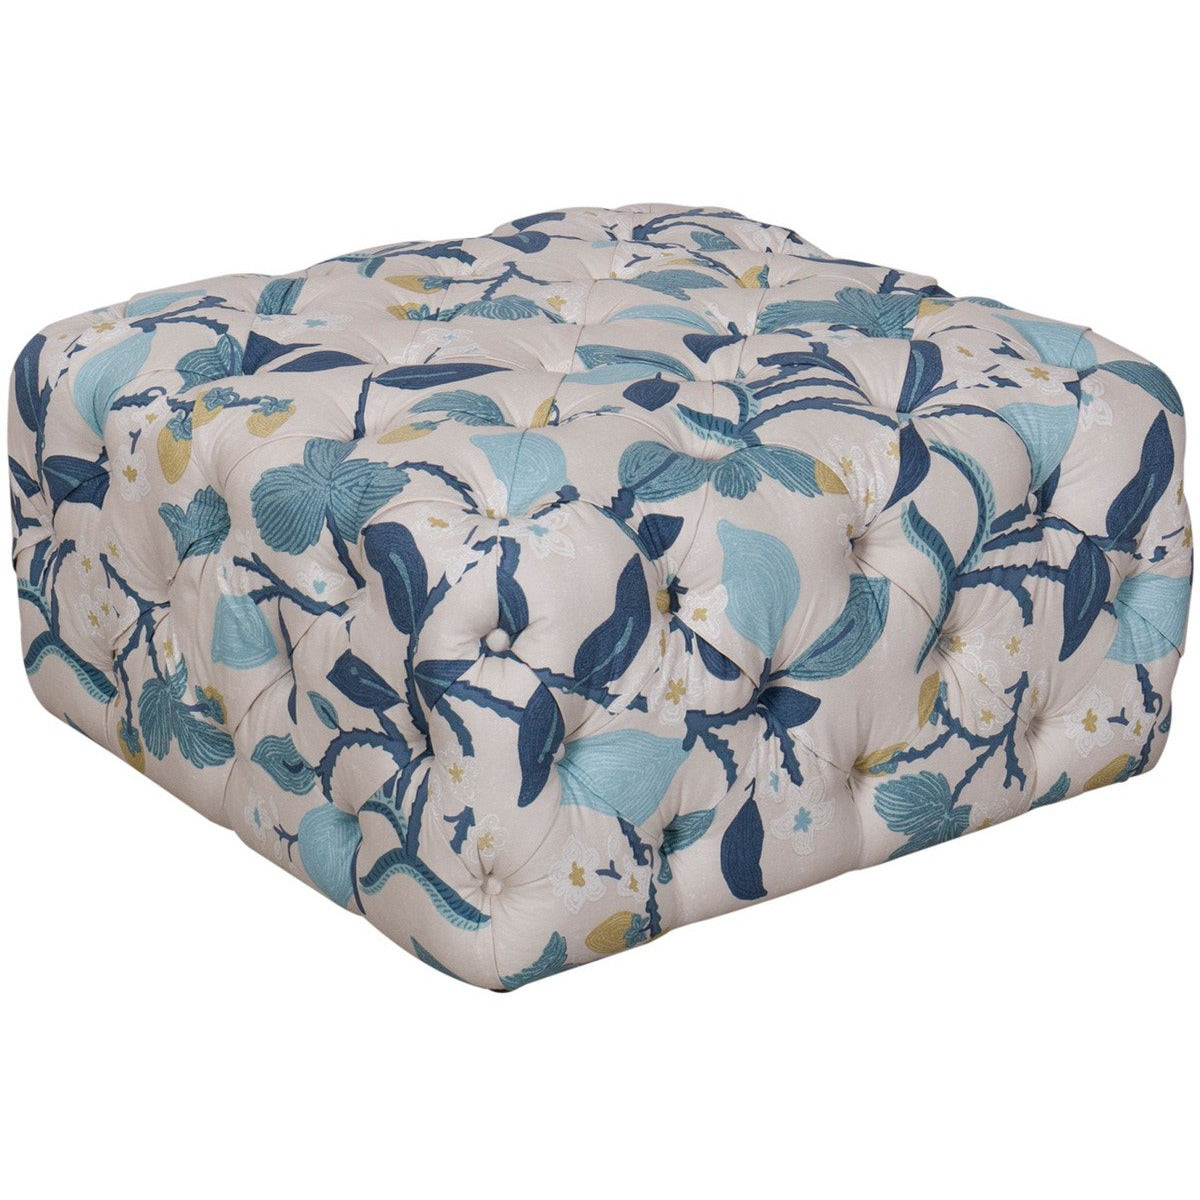 Ottomans - Floral Patterned Fabric Upholstered Wooden Ottoman With Button Tufted Detailing, Multicolor